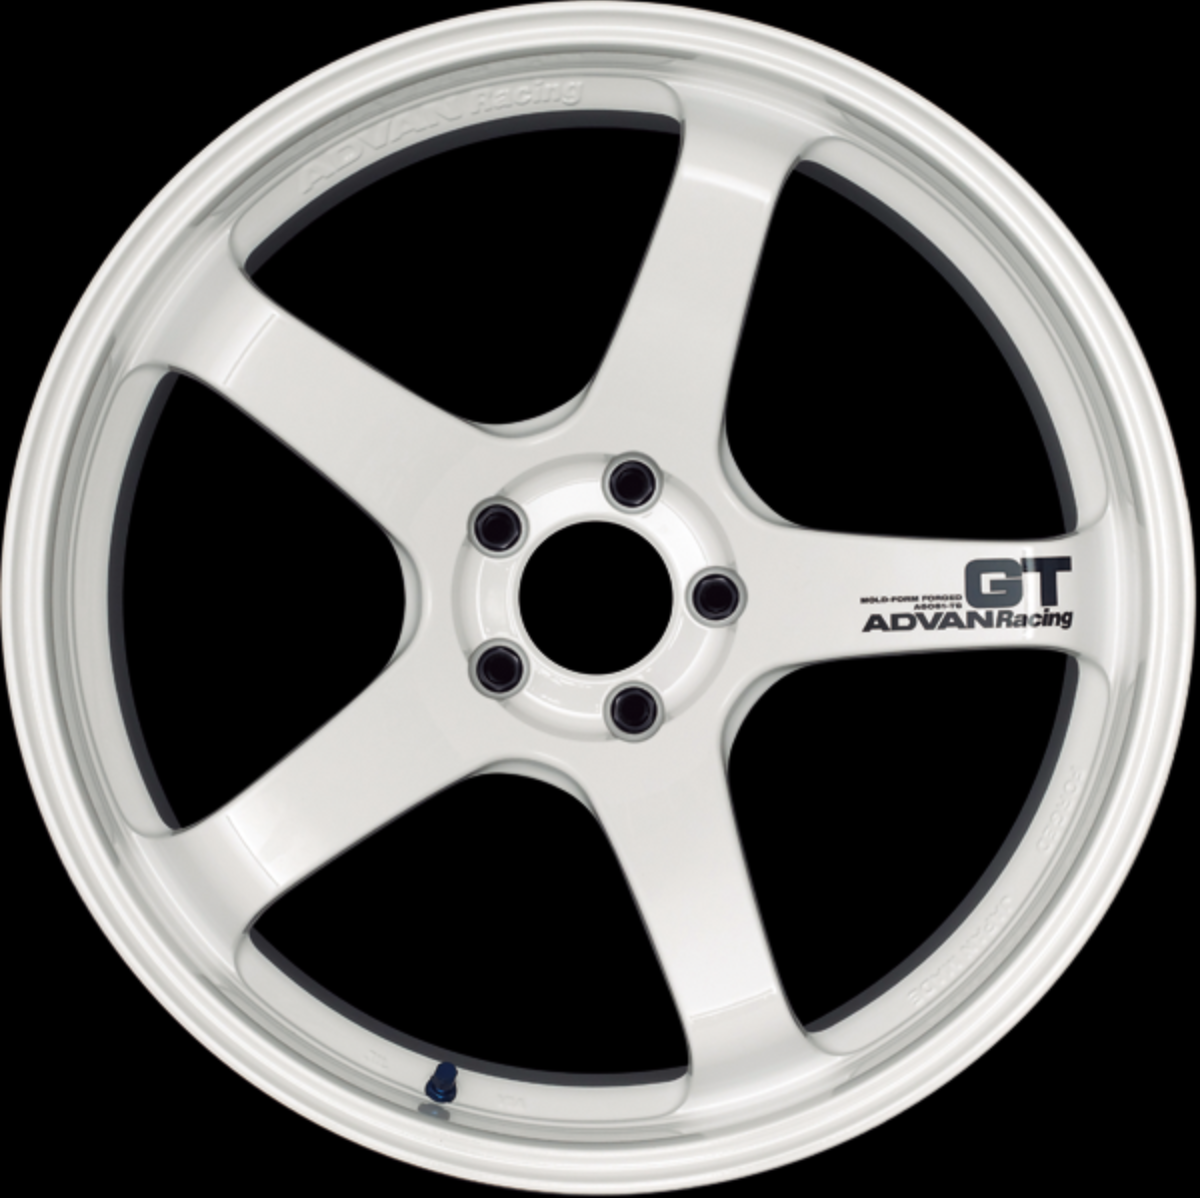 [Set of 4] YOKOHAMA ADVAN Racing GT 19x10.5J +25 5x114.3 RACING WHITE